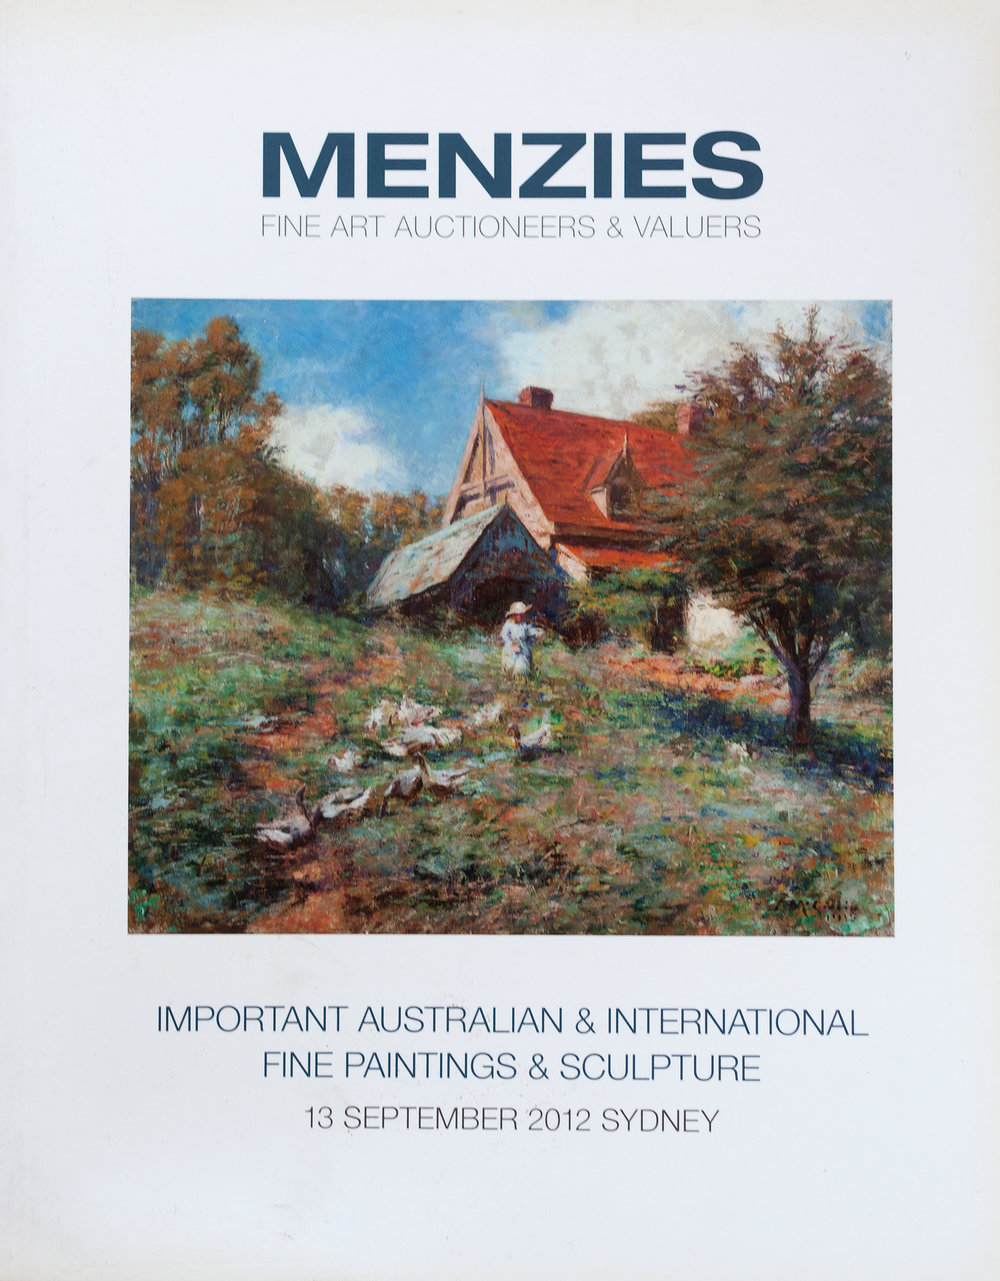 171023 Menzies Catalogues_020.jpg